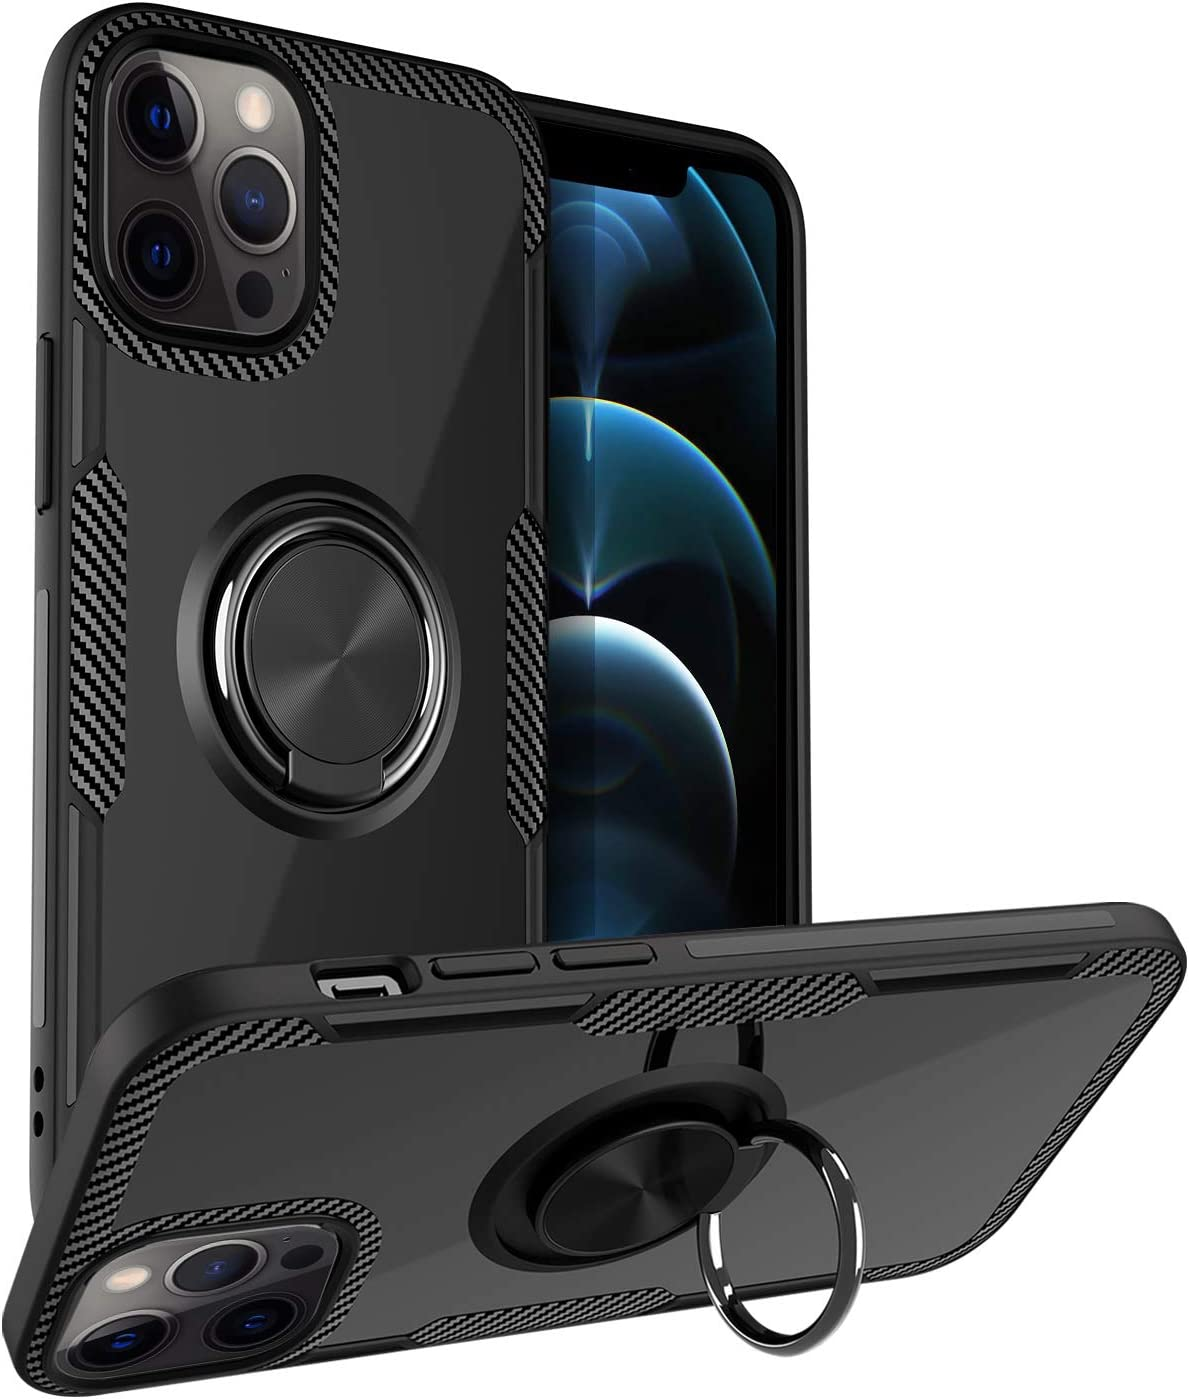 Olixar for iPhone 12 Pro Max Case with Finger Loop